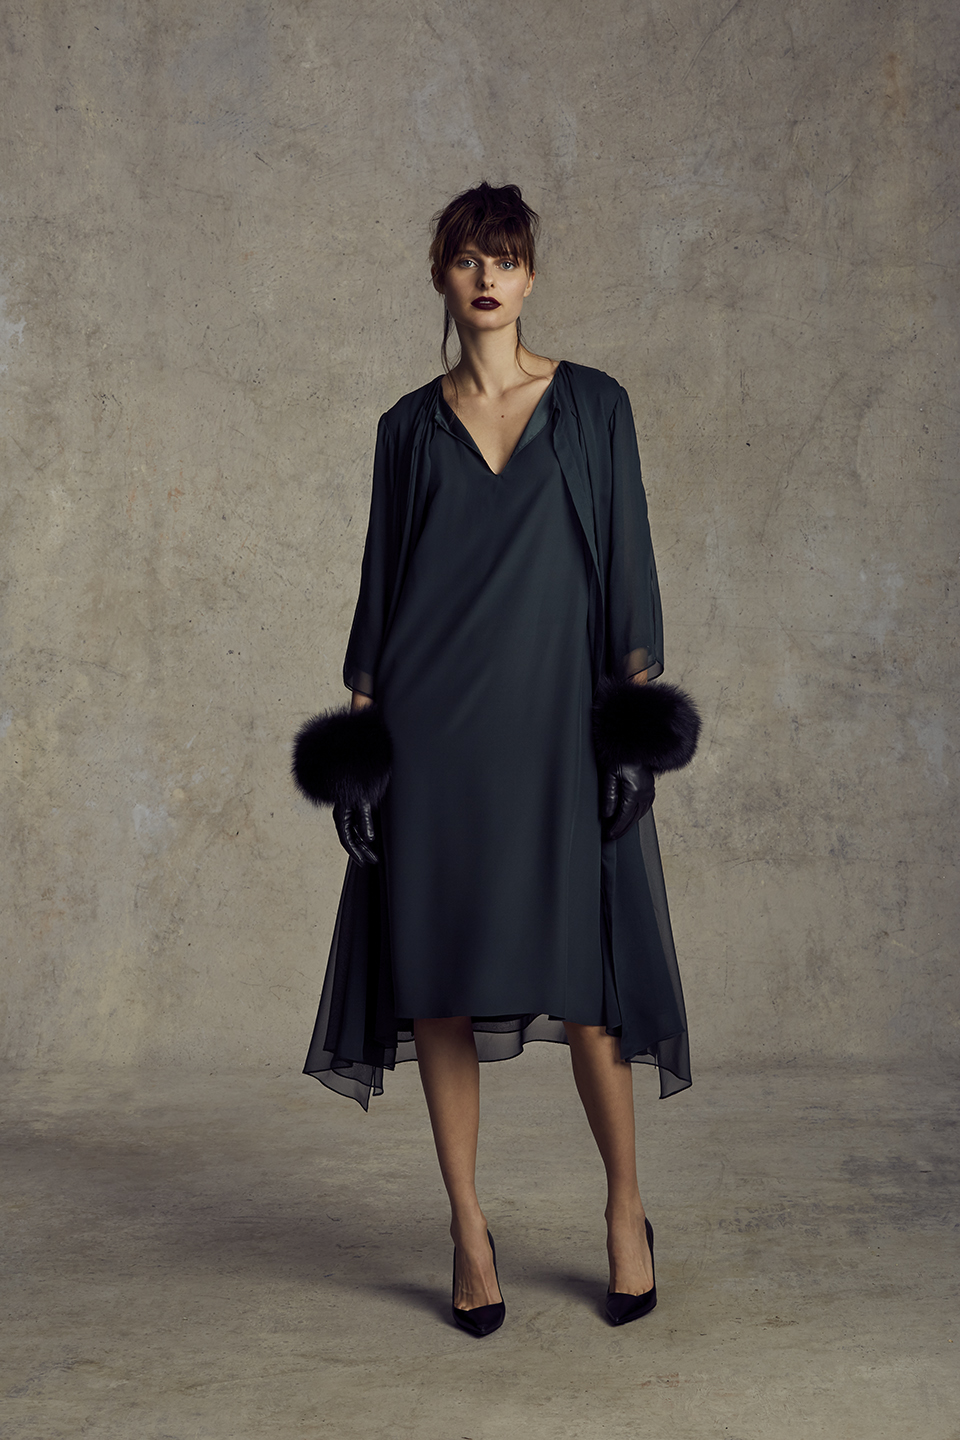 VIVA DRESS   SILK CHARMEUSE, SILK CHIFFON      CATHERINE GLOVES   TOUCH POINT TECH FRIENDLY LAMBSKIN, FOX FUR CASHMERE LINING      Contact for inquiry